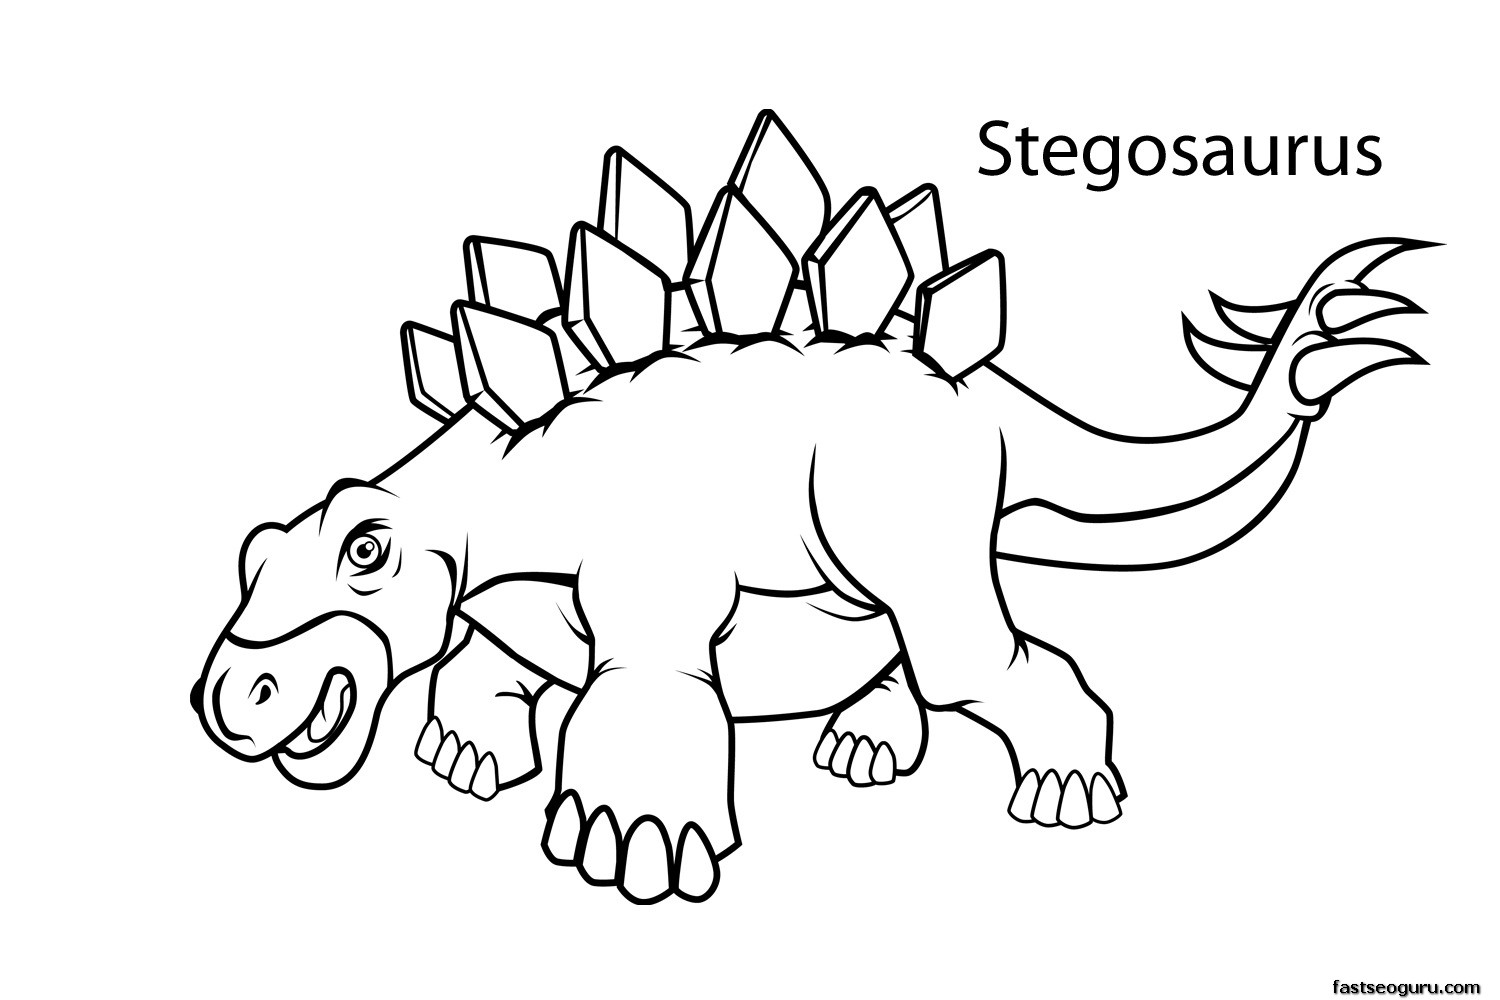 Lego Dinosaur Coloring Pages At Getdrawings Free Download